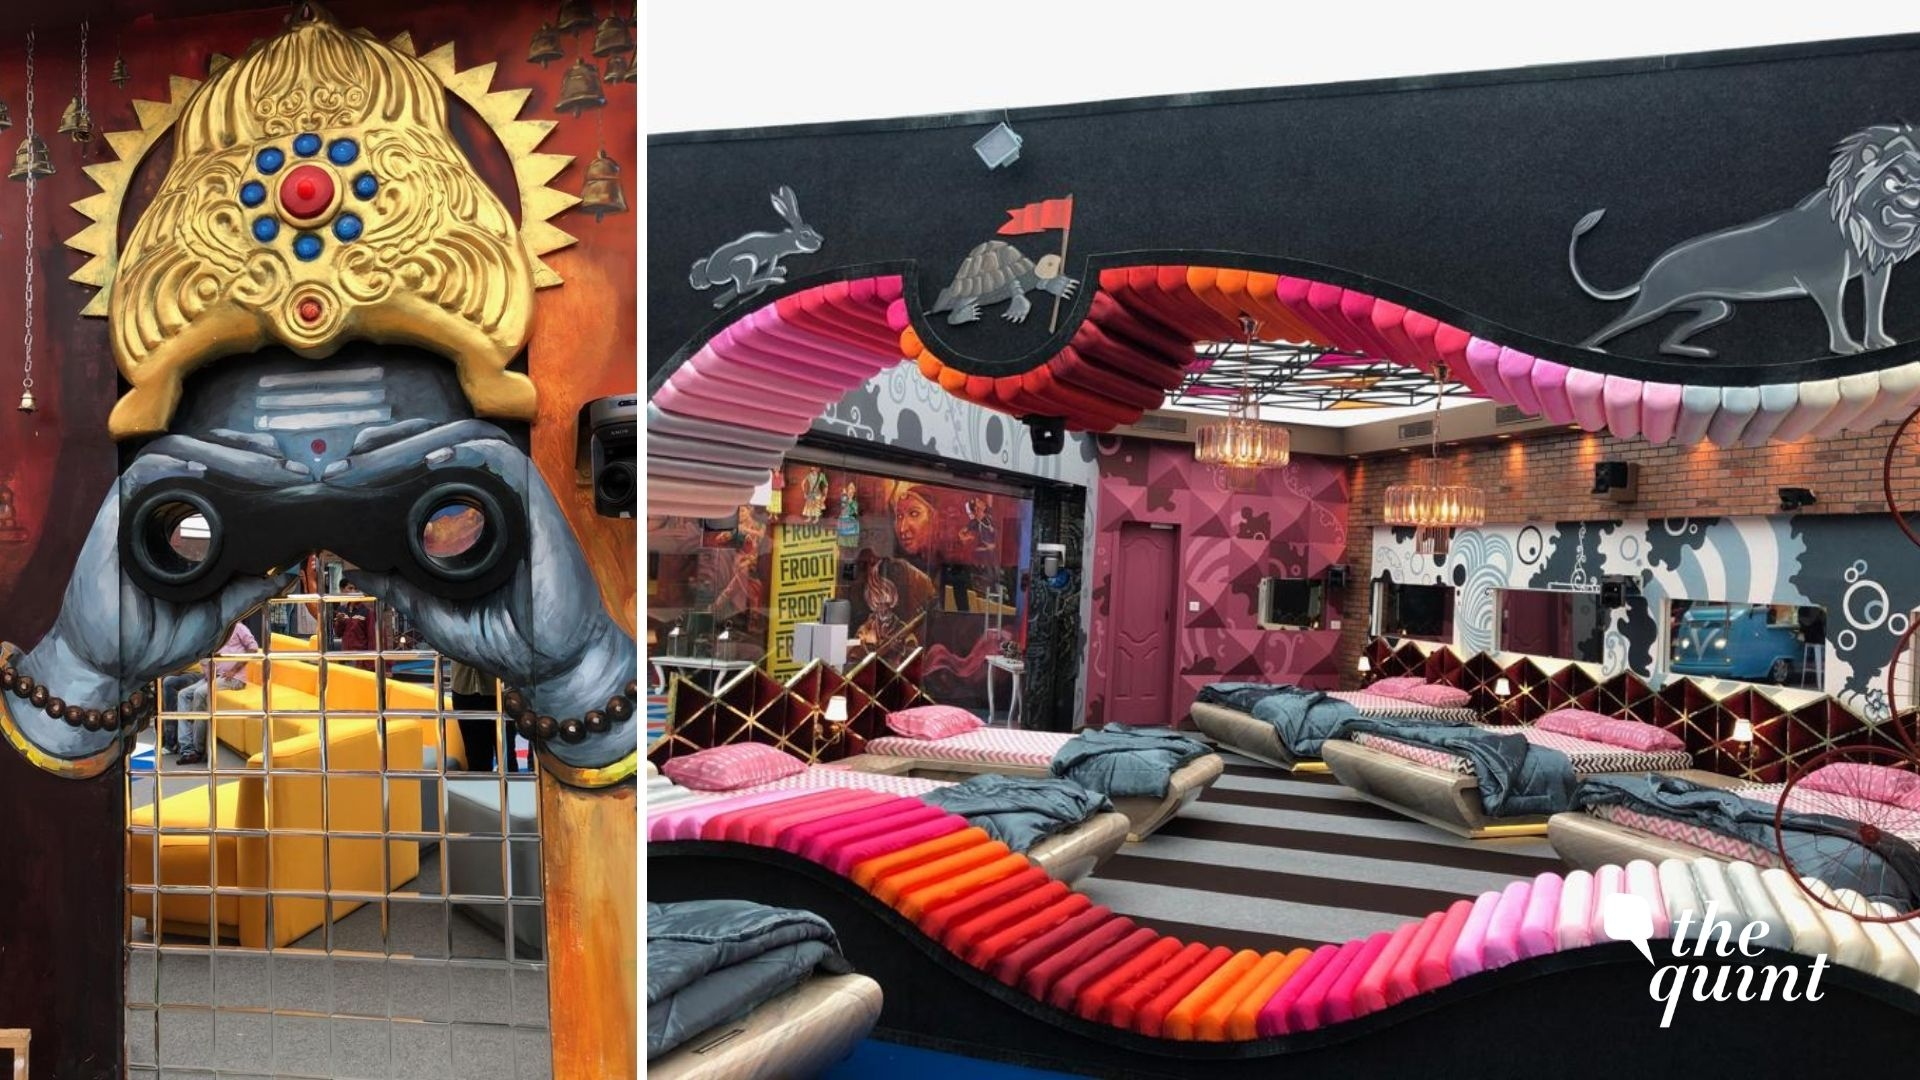 Bigg Boss Tamil 3 House Photos: First Look of House for Bigg Boss